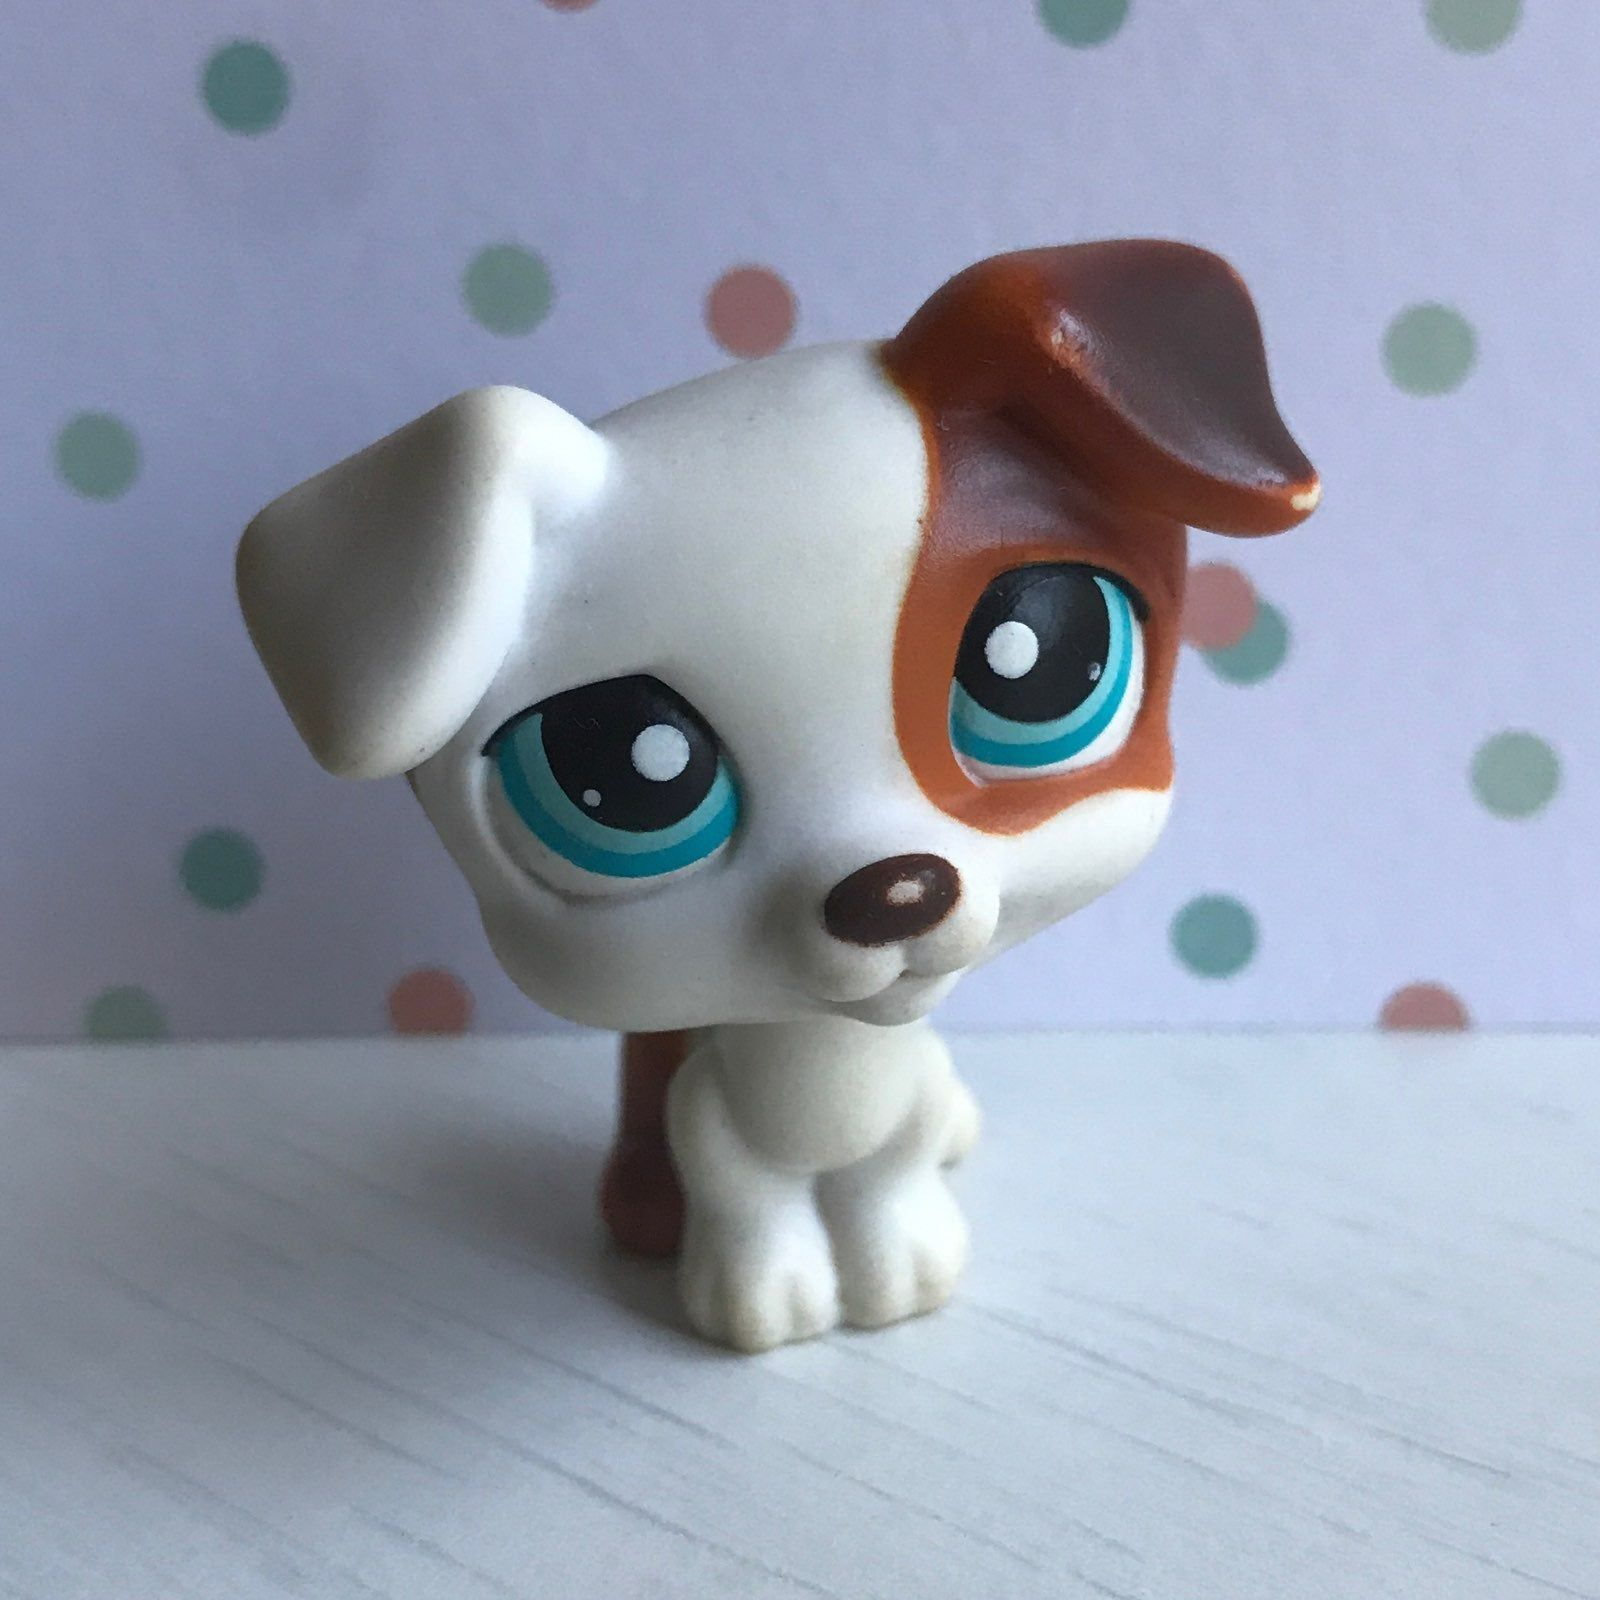 Authentic Lps Terrier 151 This Pet Was Washed Prior To Pictures Some Dirt Won T Come Off I Washed To The Best Of My Ability Lps Littlest Pet Shop Terrier